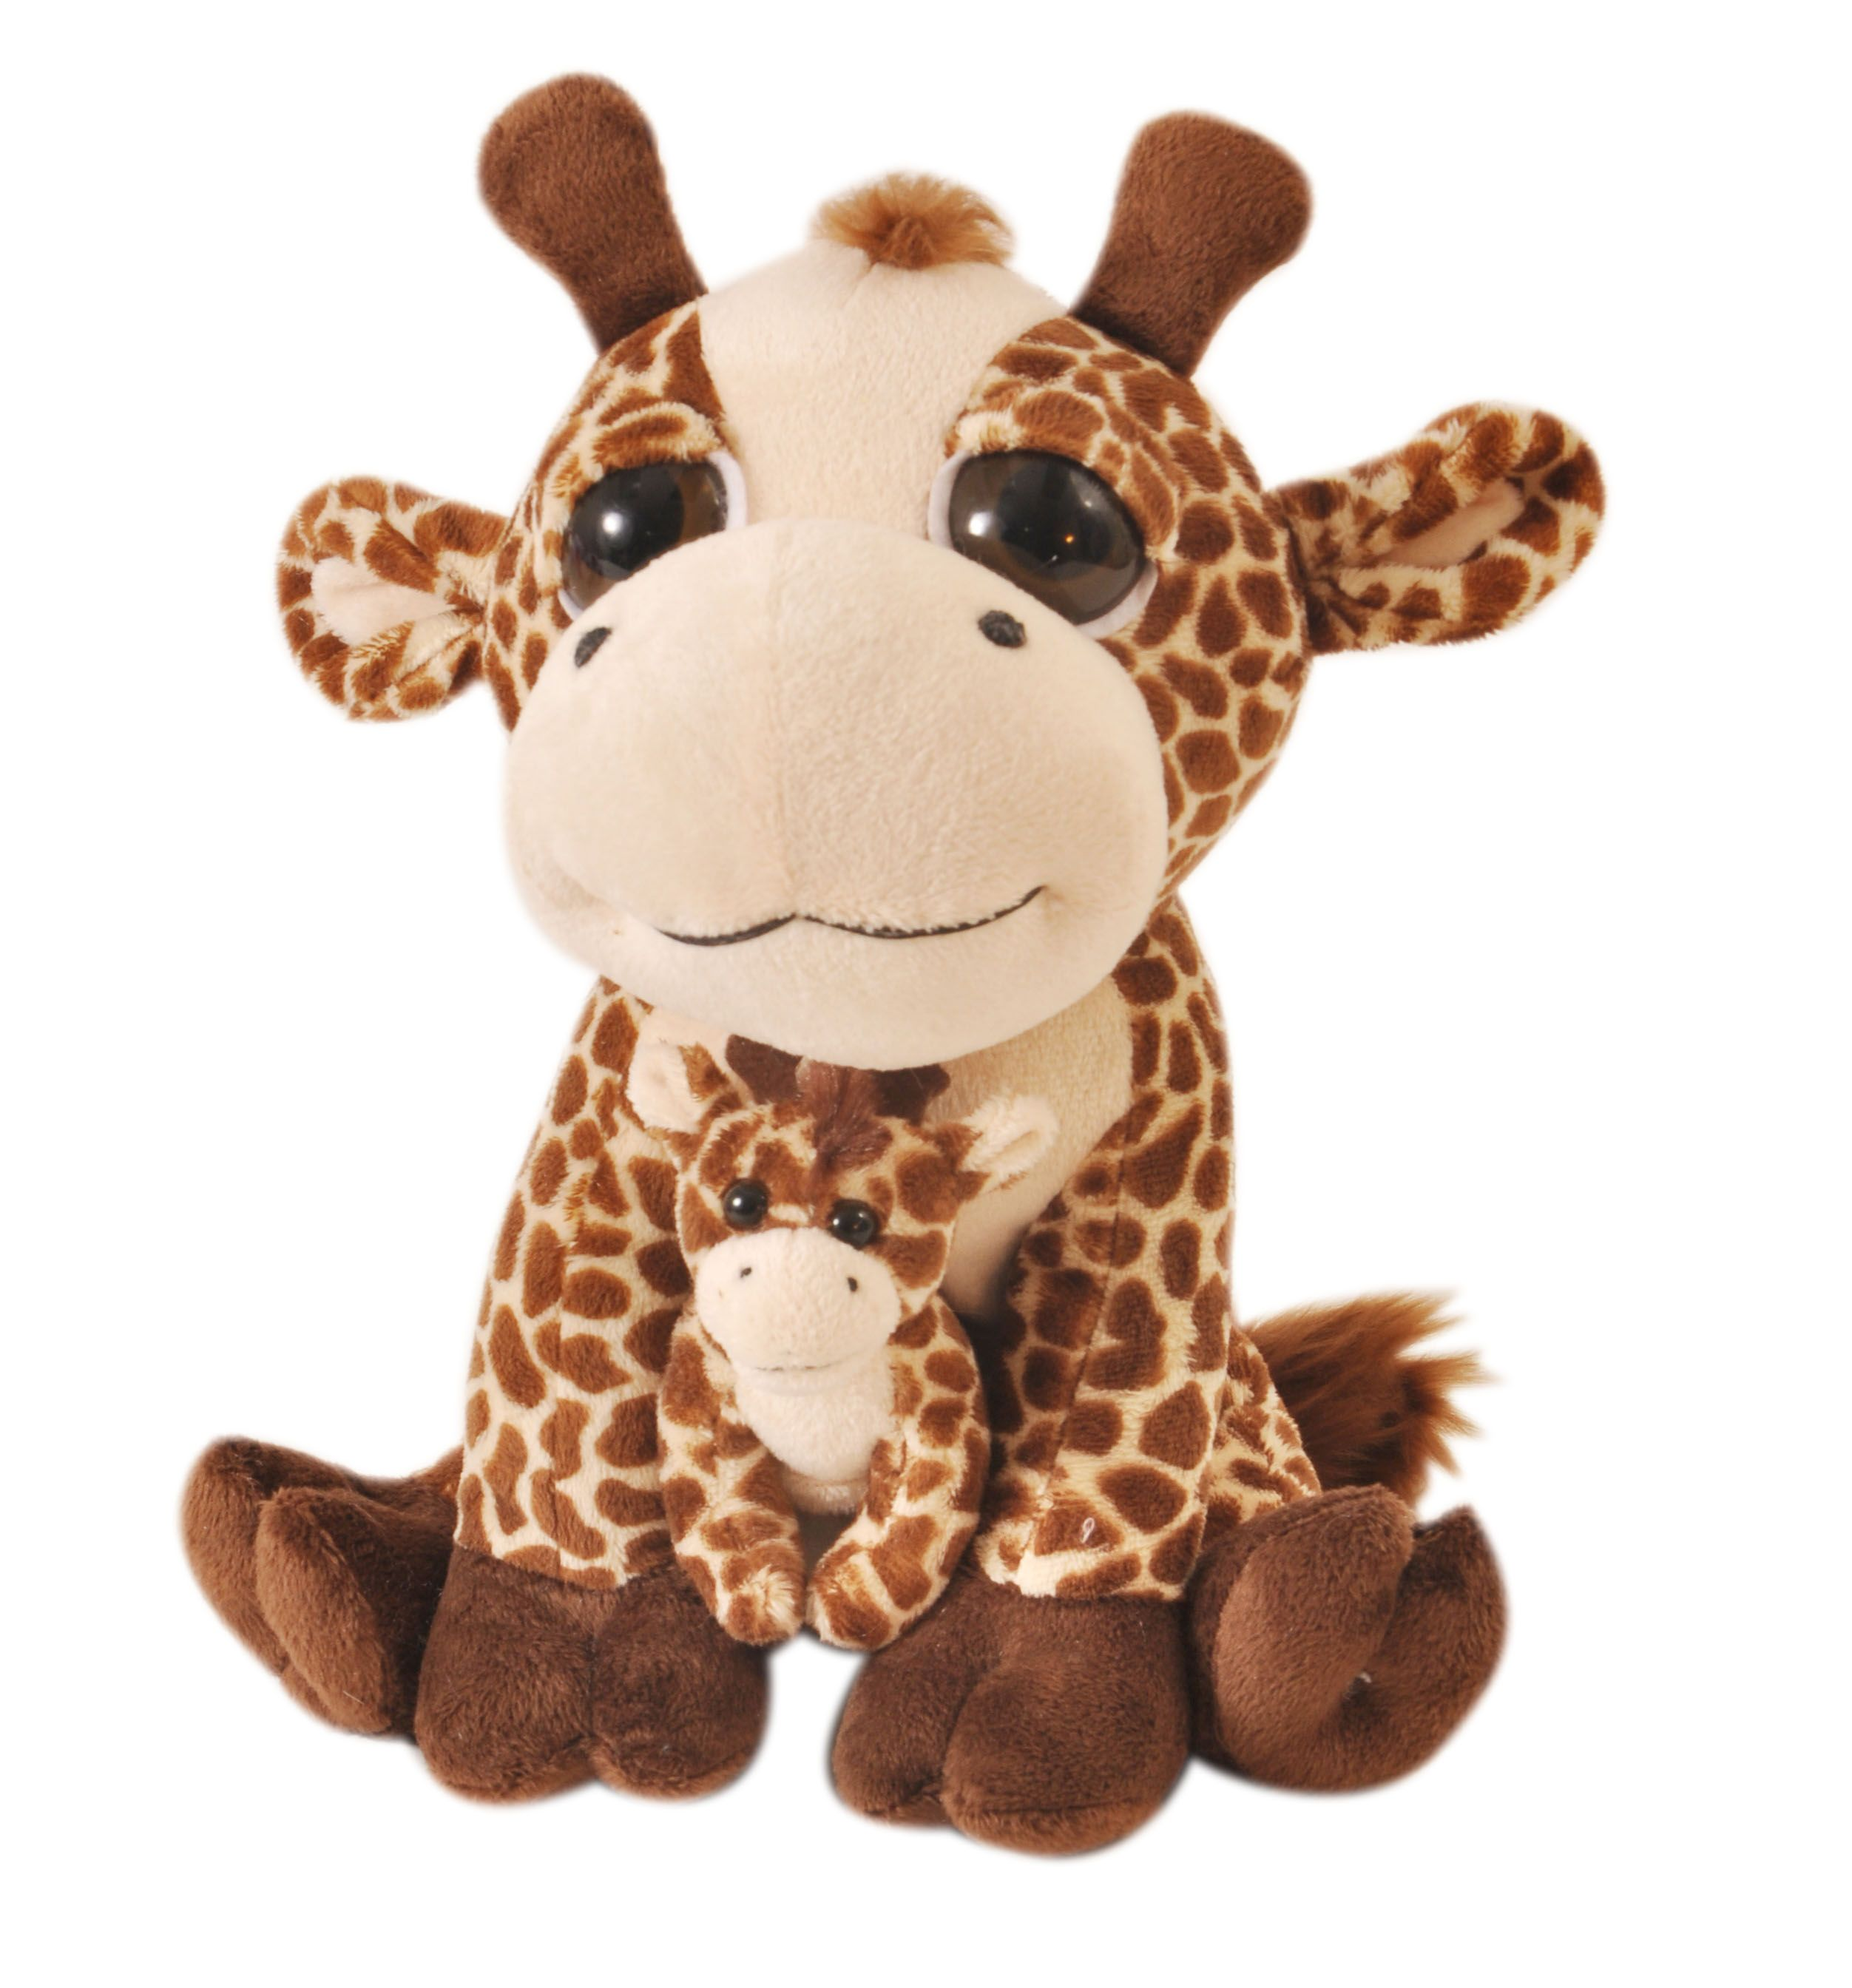 Bright Eyes Giraffe Pocketz - Stuffed Animal by The Petting Zoo (413504)